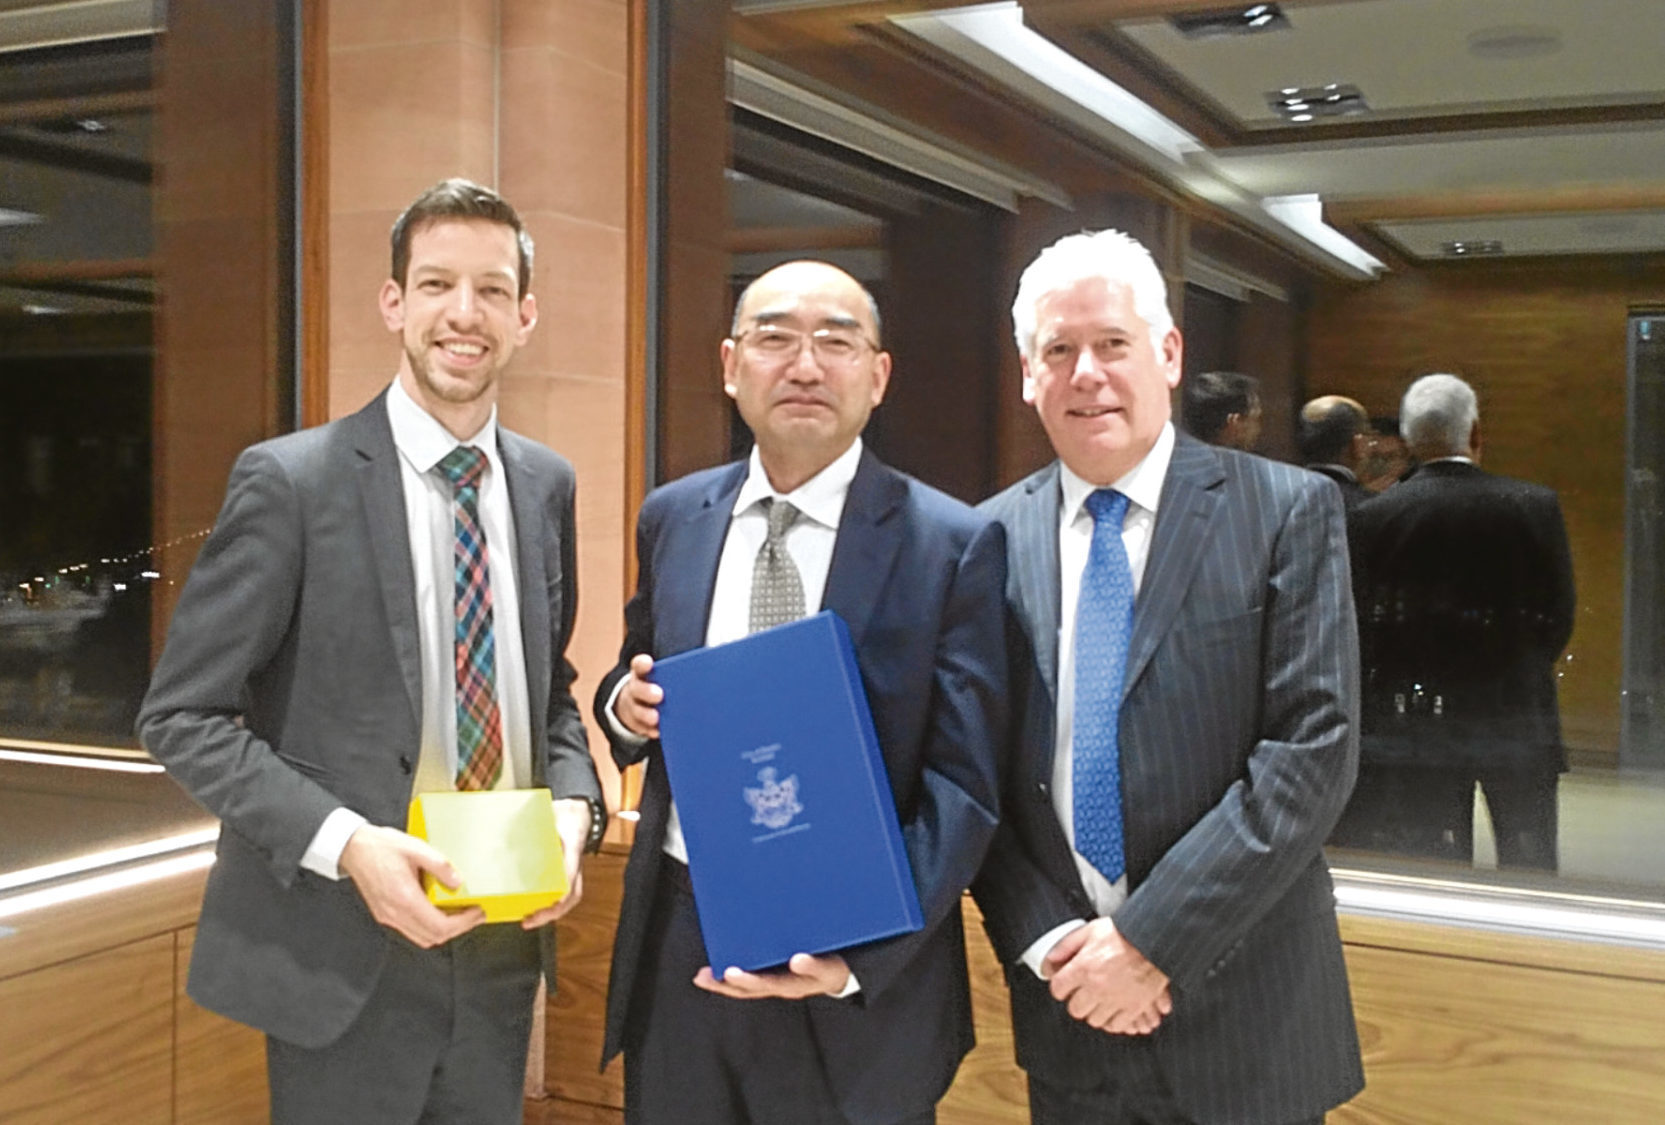 John Alexander with COES vice-president Jiang Yan and Callum Facolner, chief executive of DundeeCom.